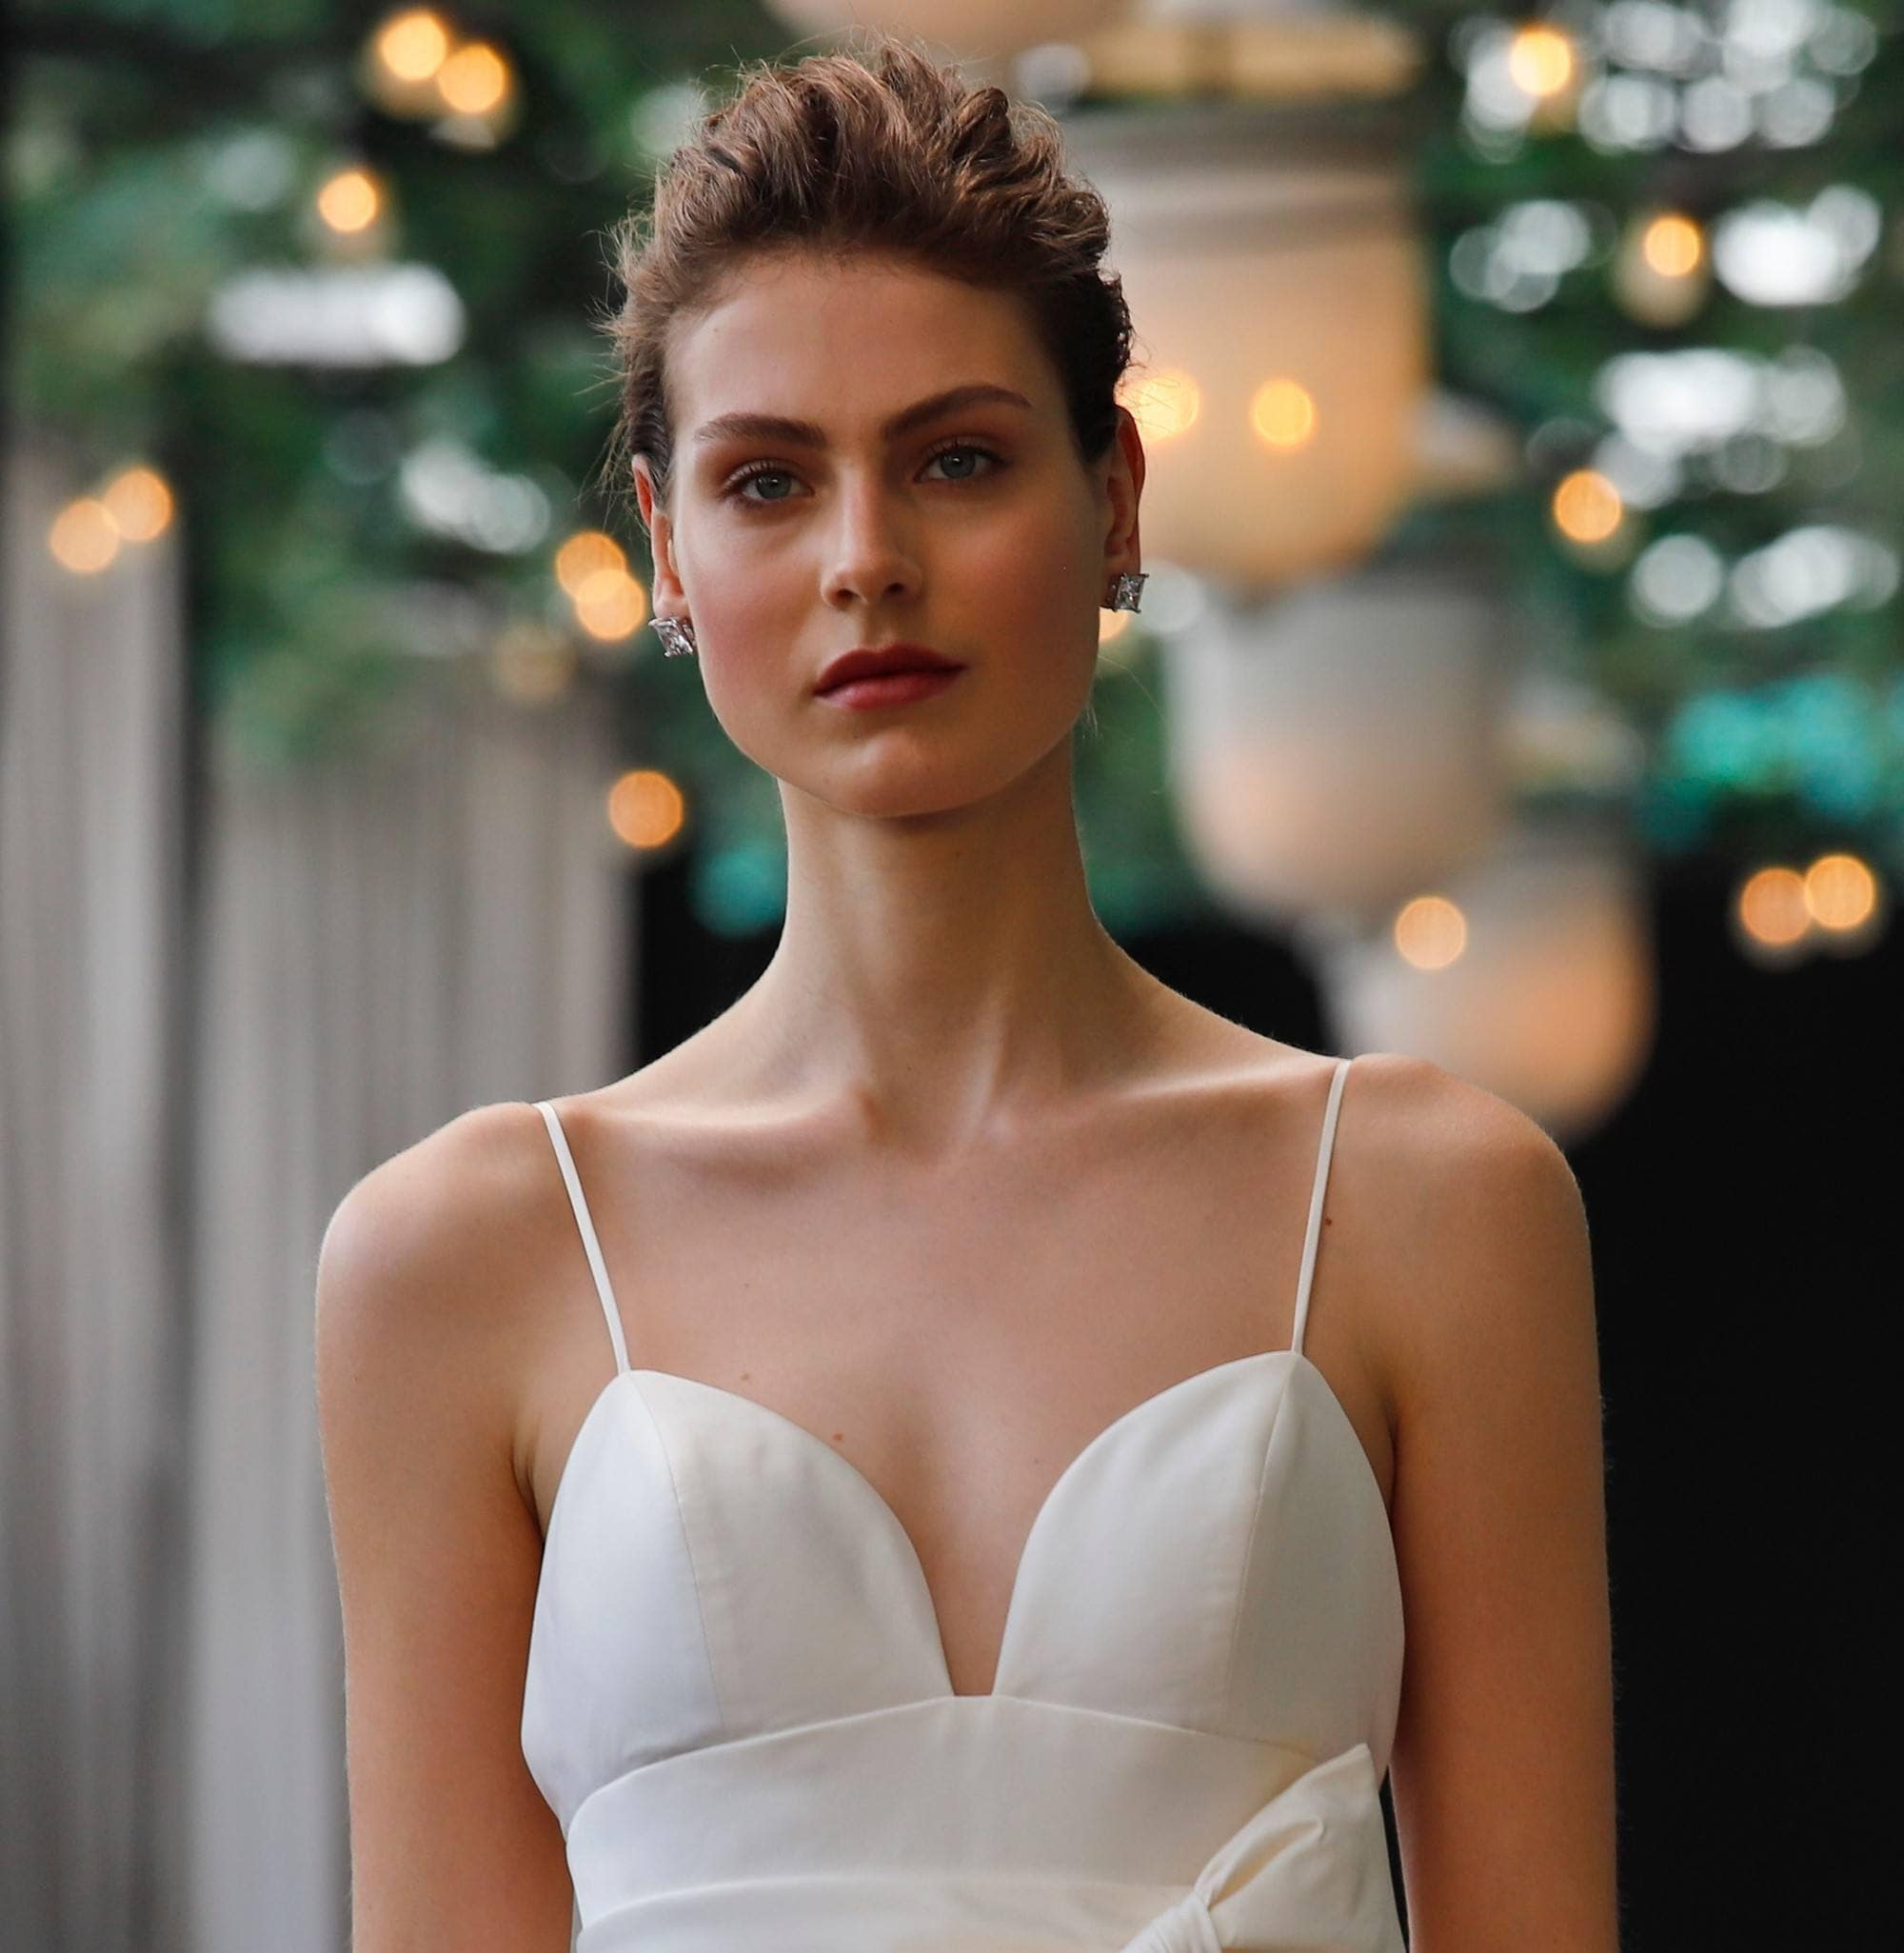 Shot of model on a bridal runway with short hair styled into a messy, swept-back quiff, wearing all white